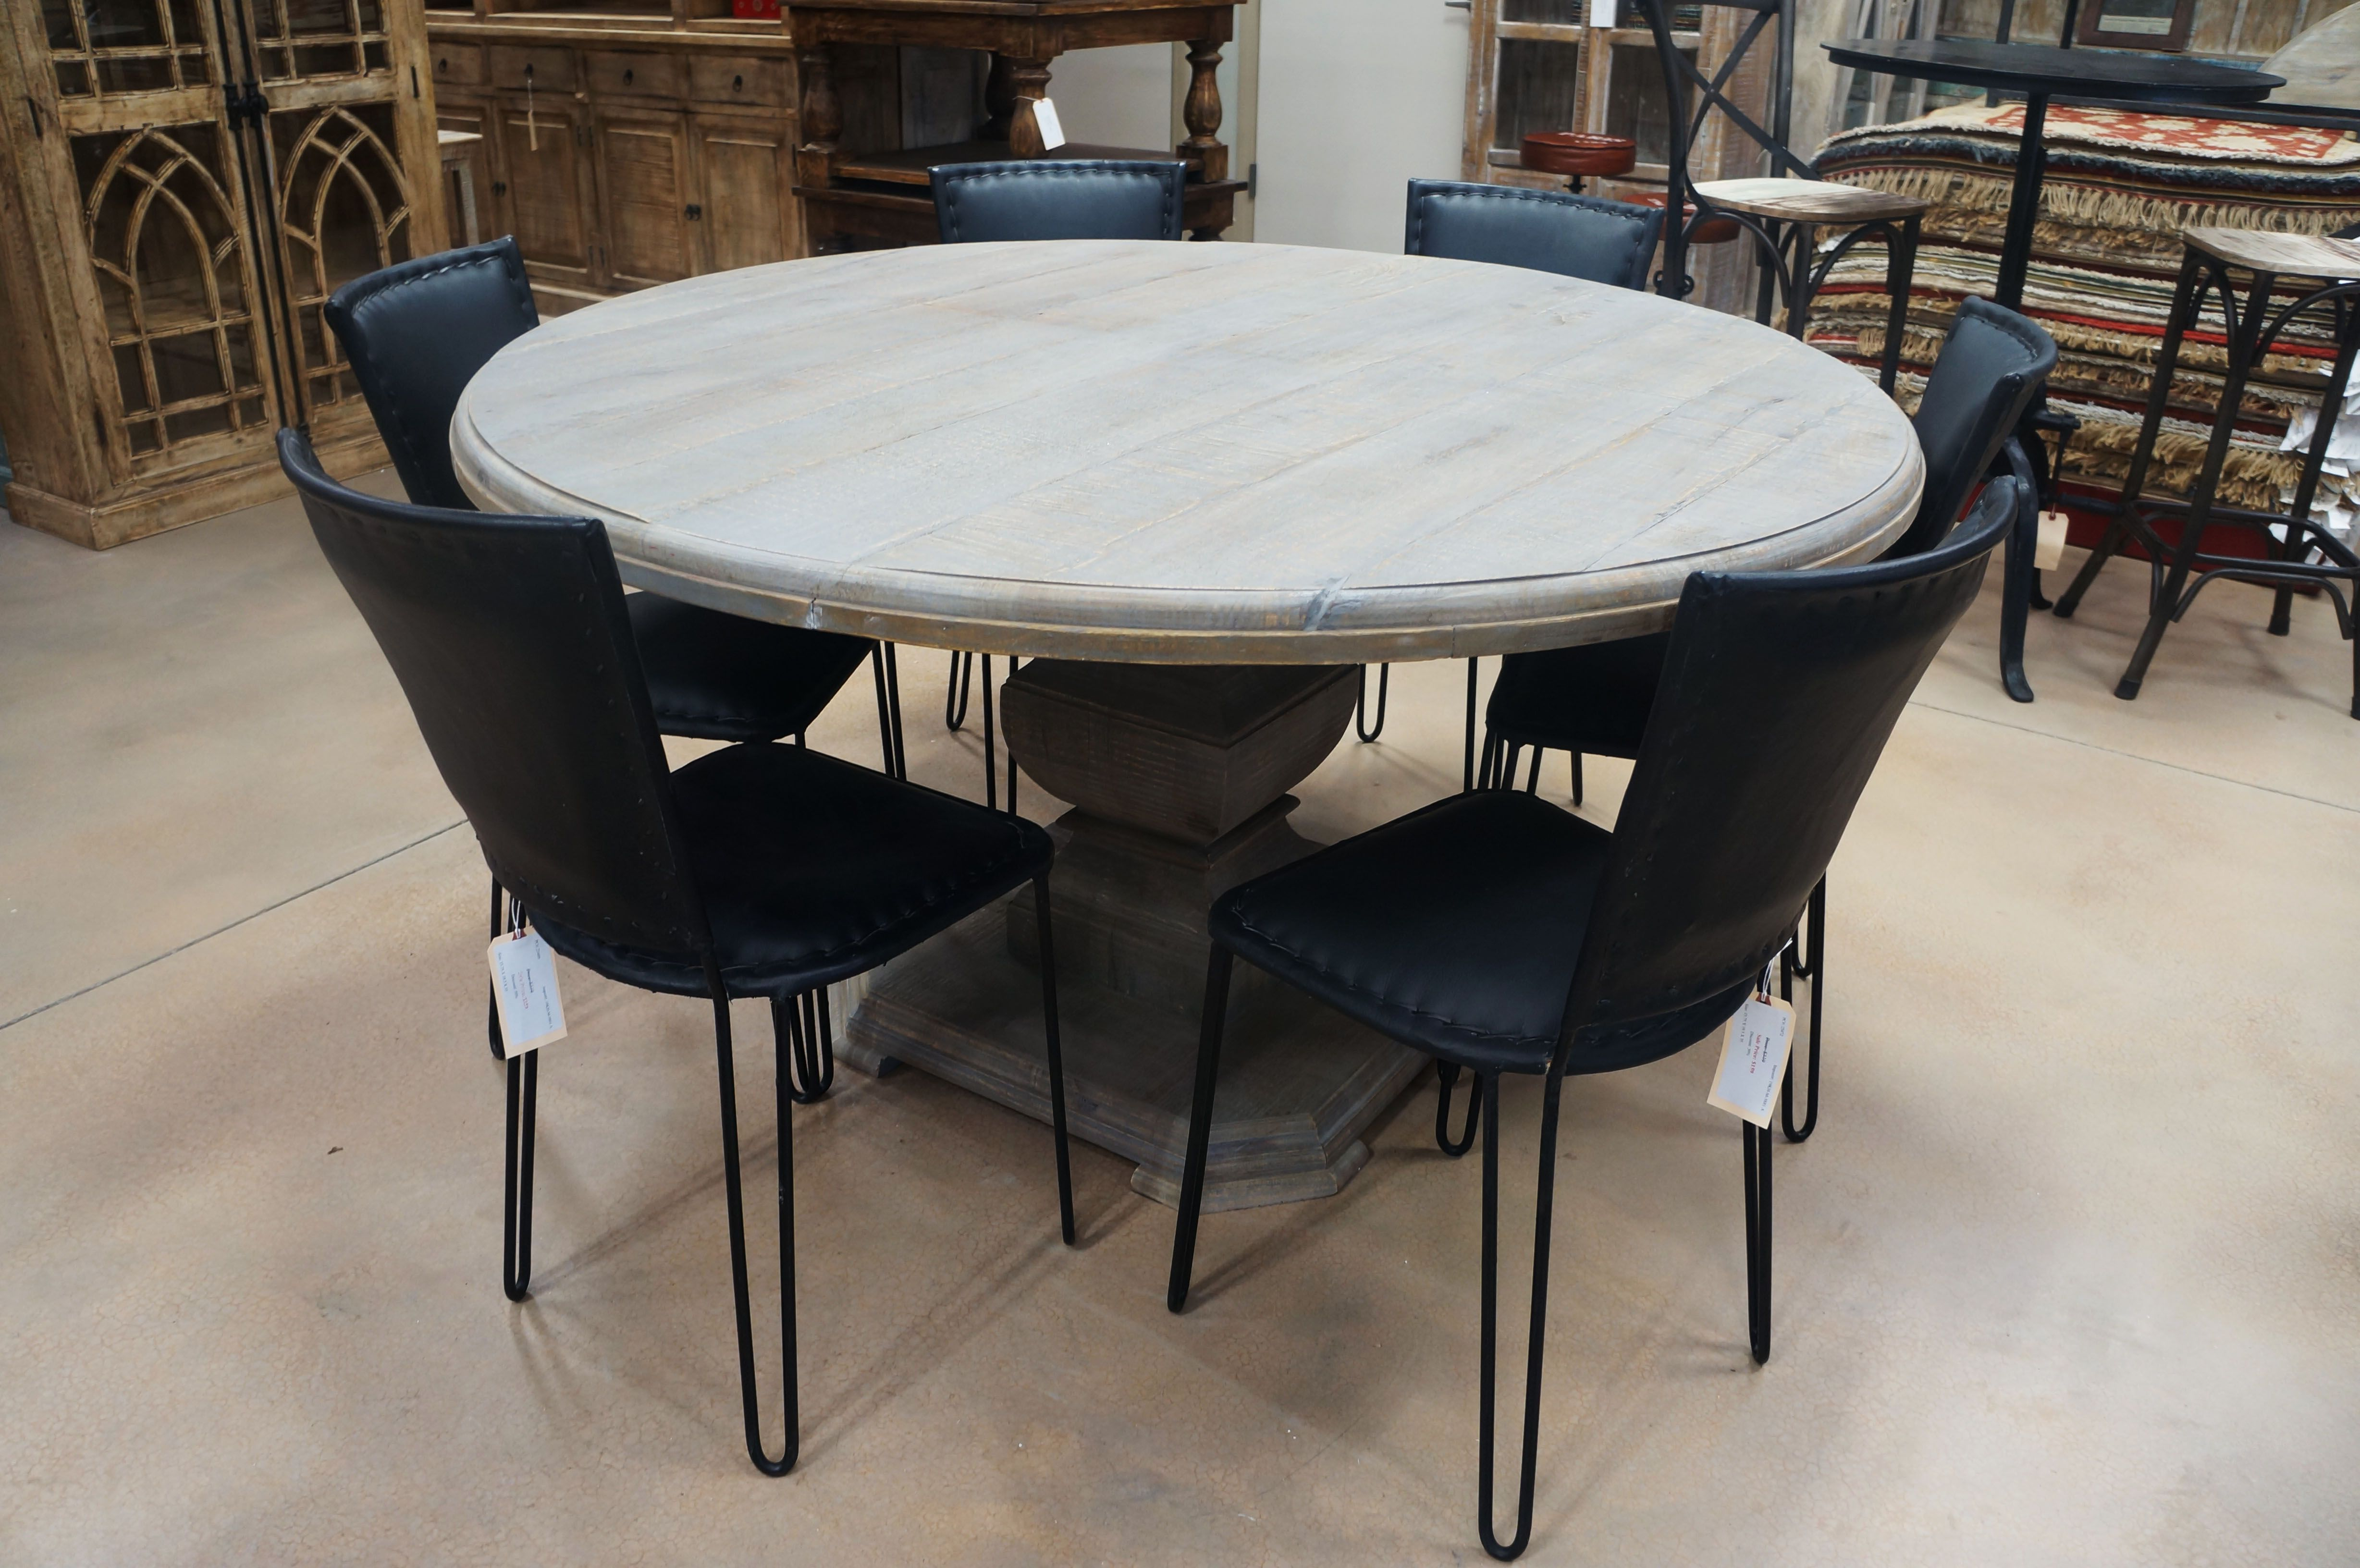 Round Dining Table With A Grey Finish 60 Inches Round With Couple